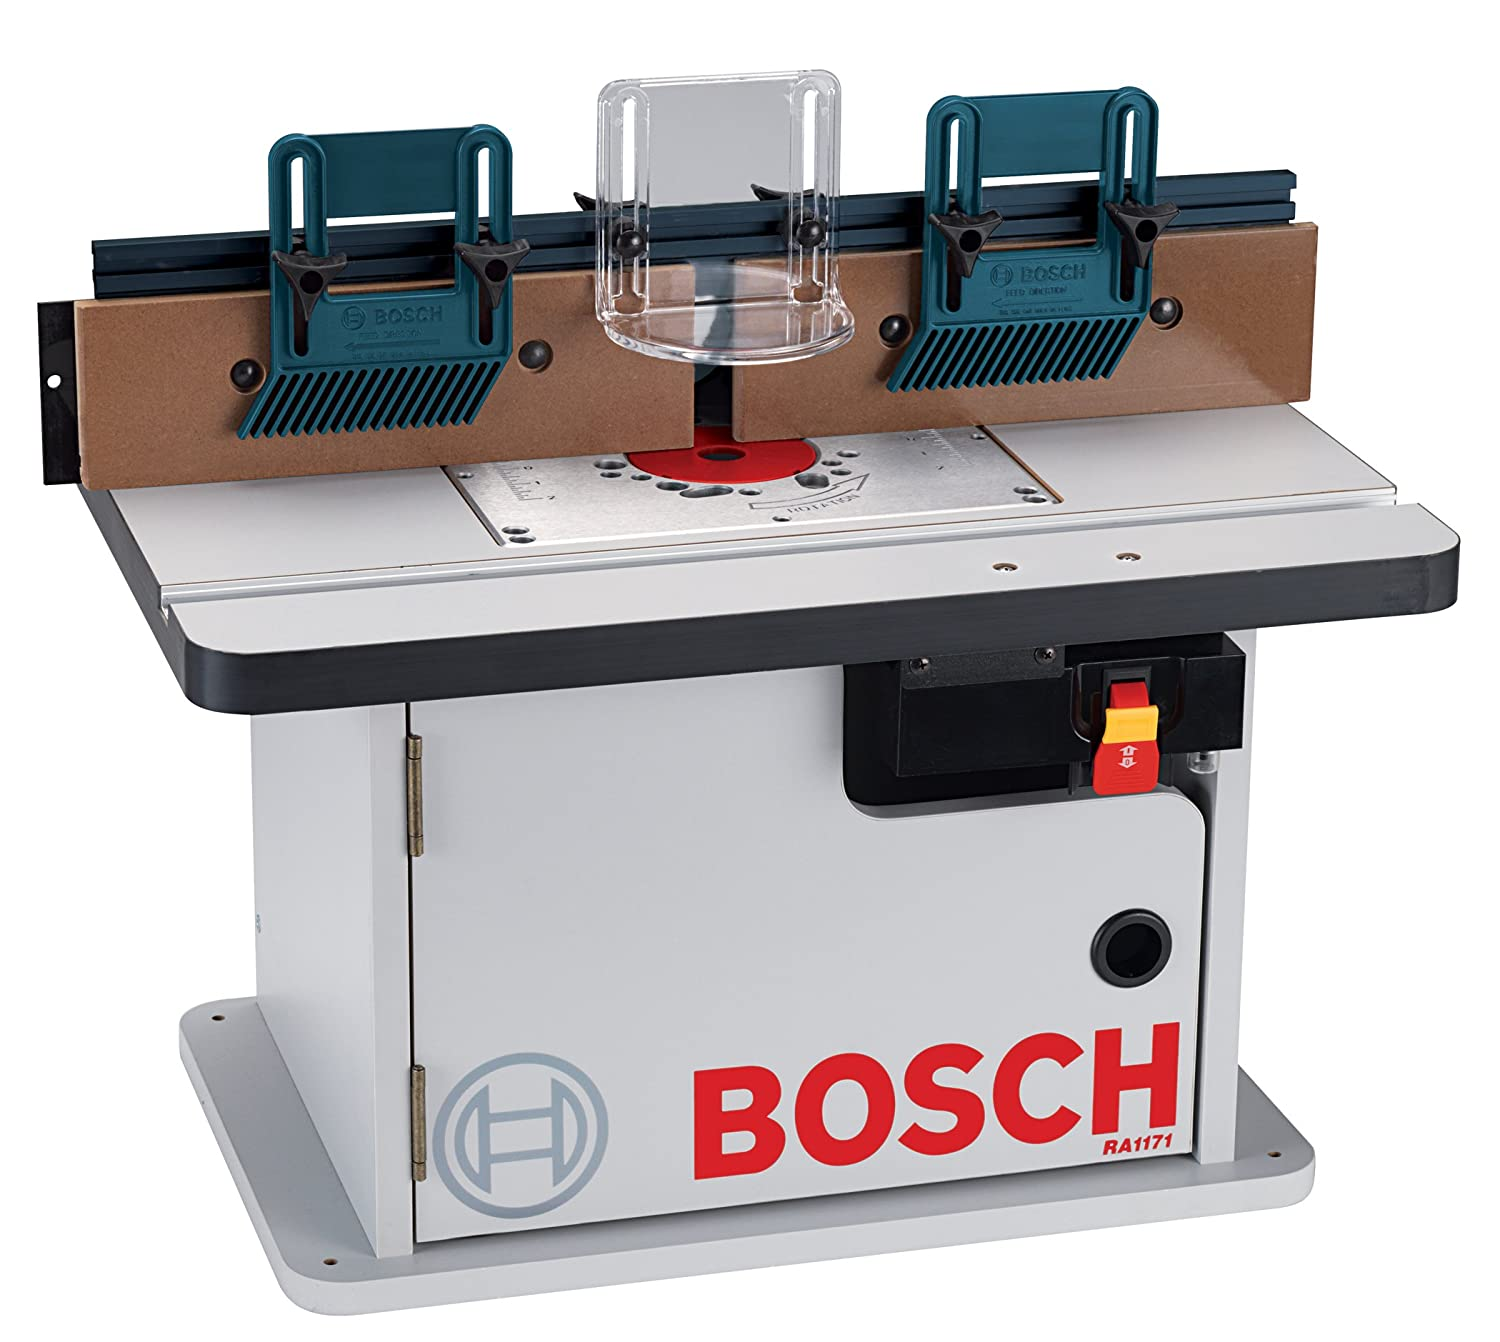 Bosch Cabinet Style Router Table RA1171 - Power Router Accessories -  Amazon.com